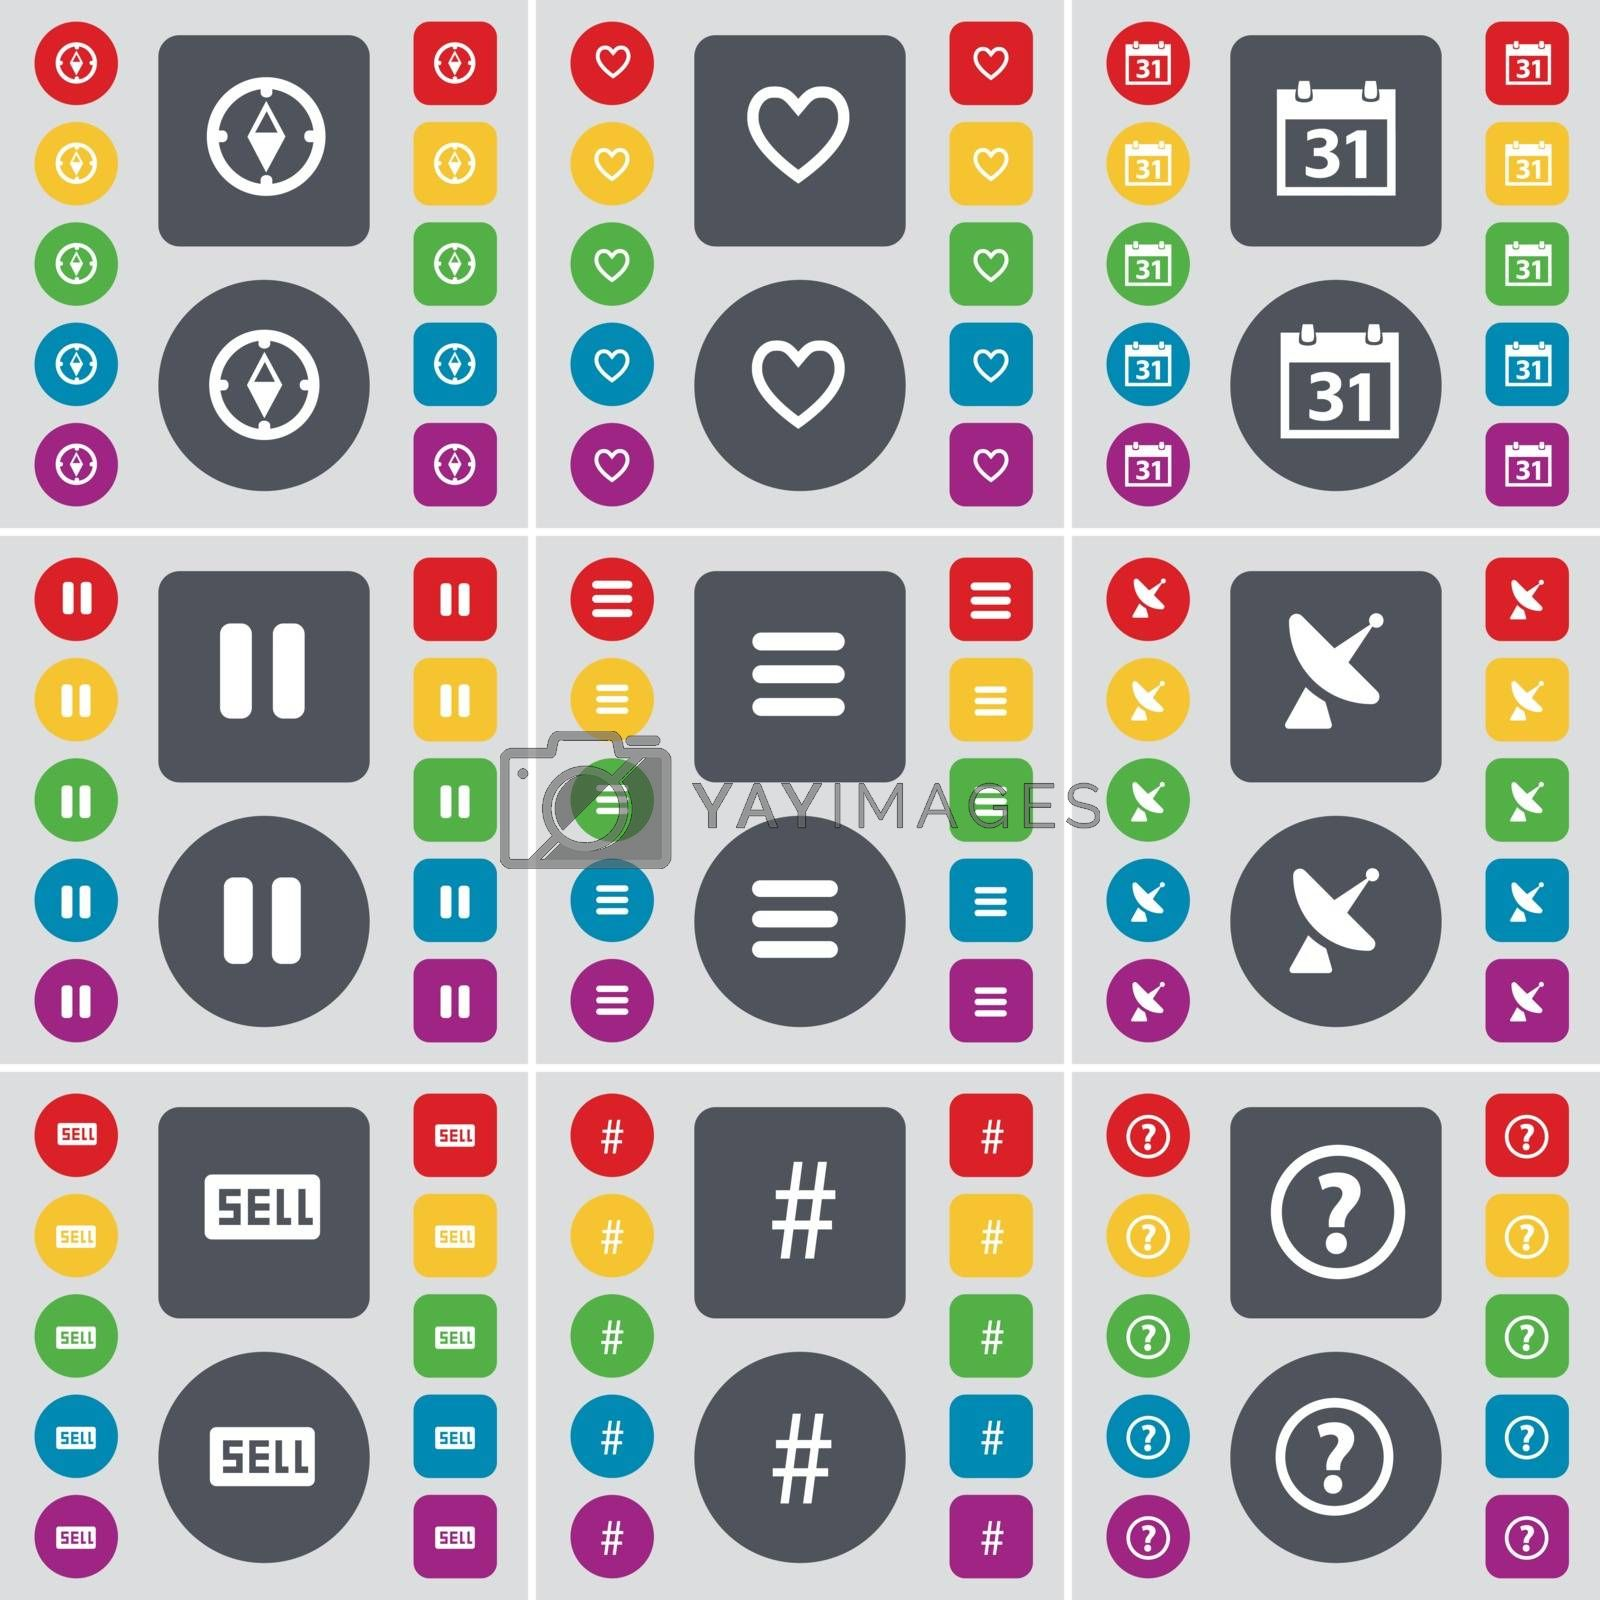 Royalty free image of Compass, Heart, Calendar, Pause, Apps, Satellite dish, Sell, Hashtag, Question mark icon symbol. A large set of flat, colored buttons for your design. Vector by serhii_lohvyniuk